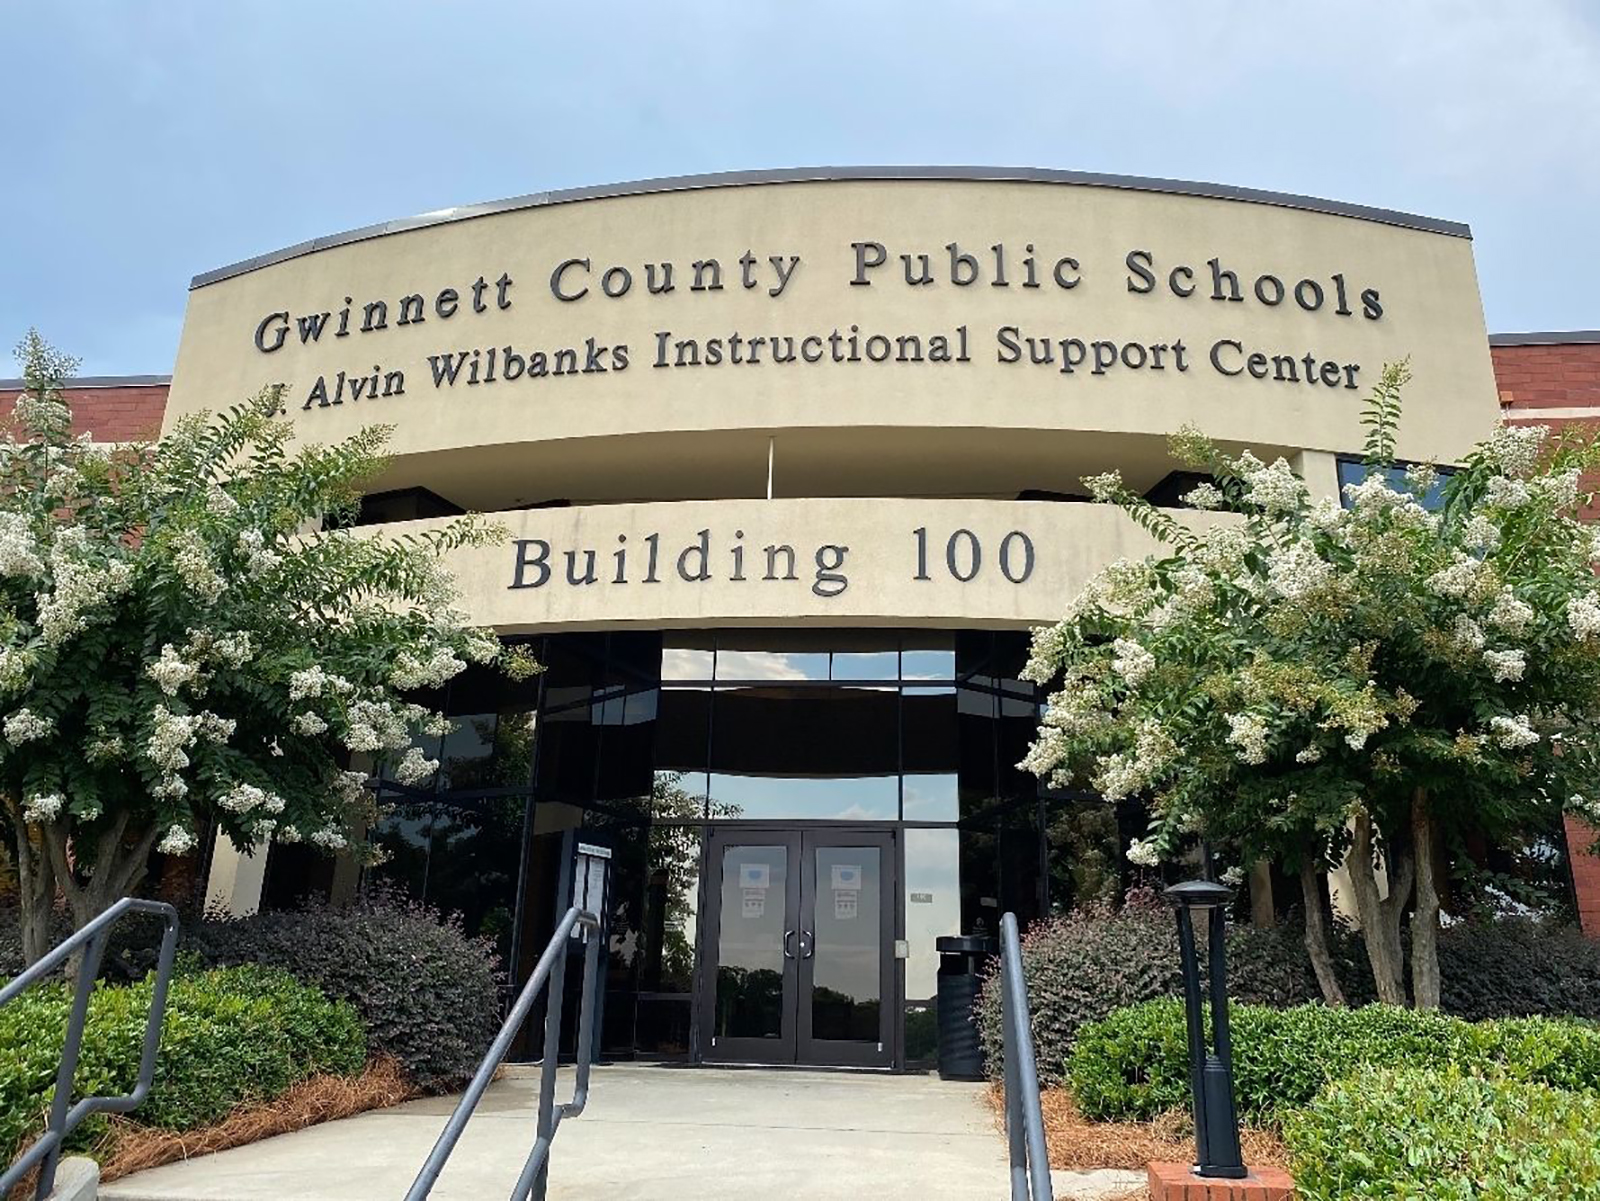 260 employees in Georgia school district have tested positive for Covid-19 or been exposed